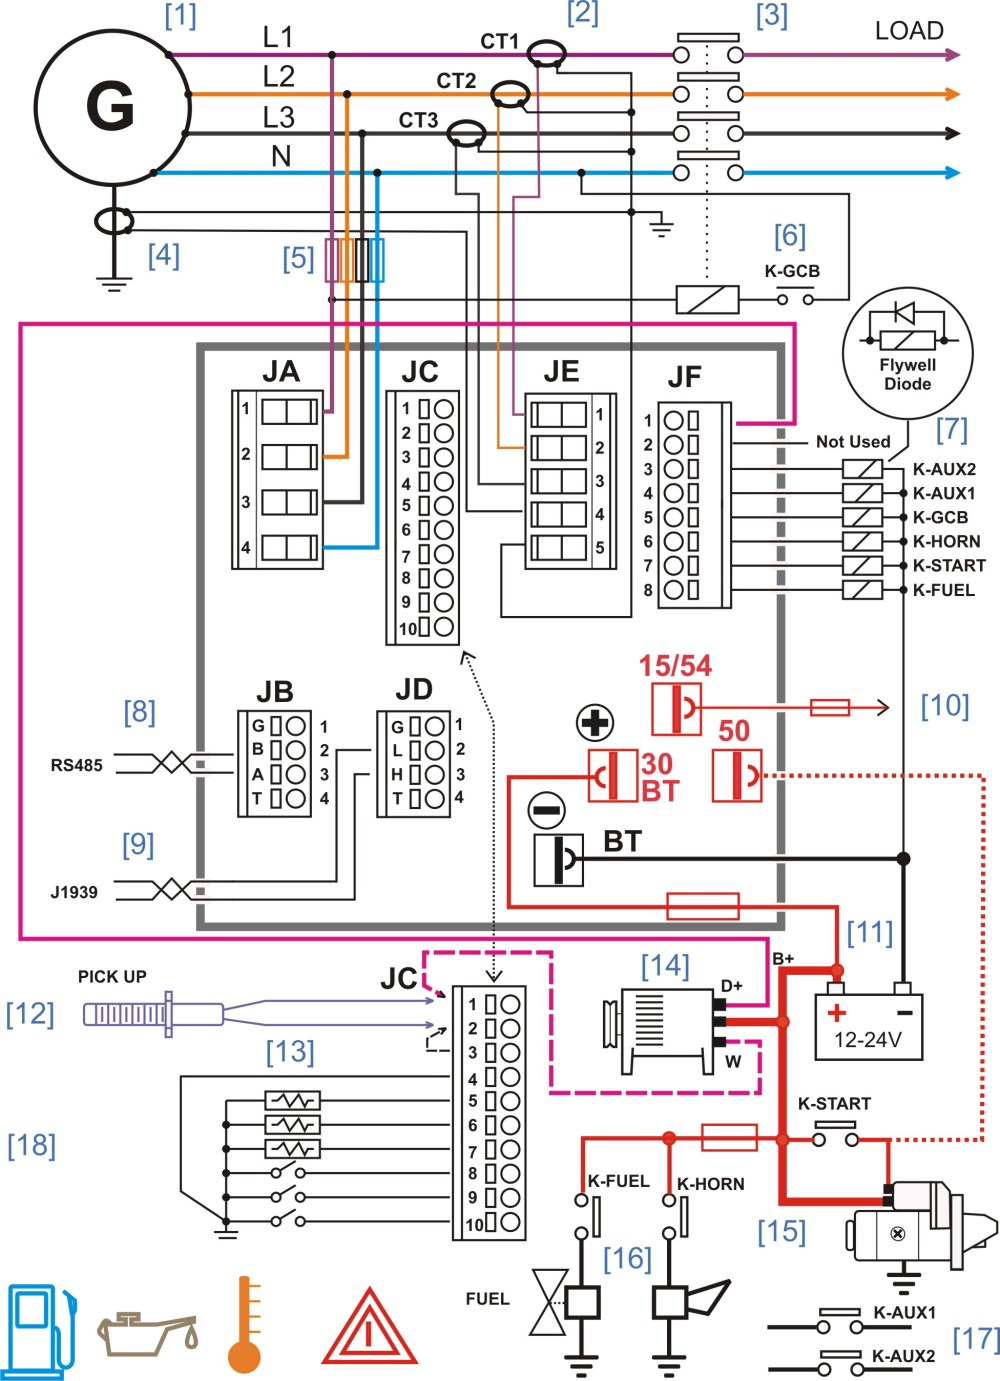 medium resolution of wiring diagram of generator schema diagram database house wiring diagram software home wiring diagram generator